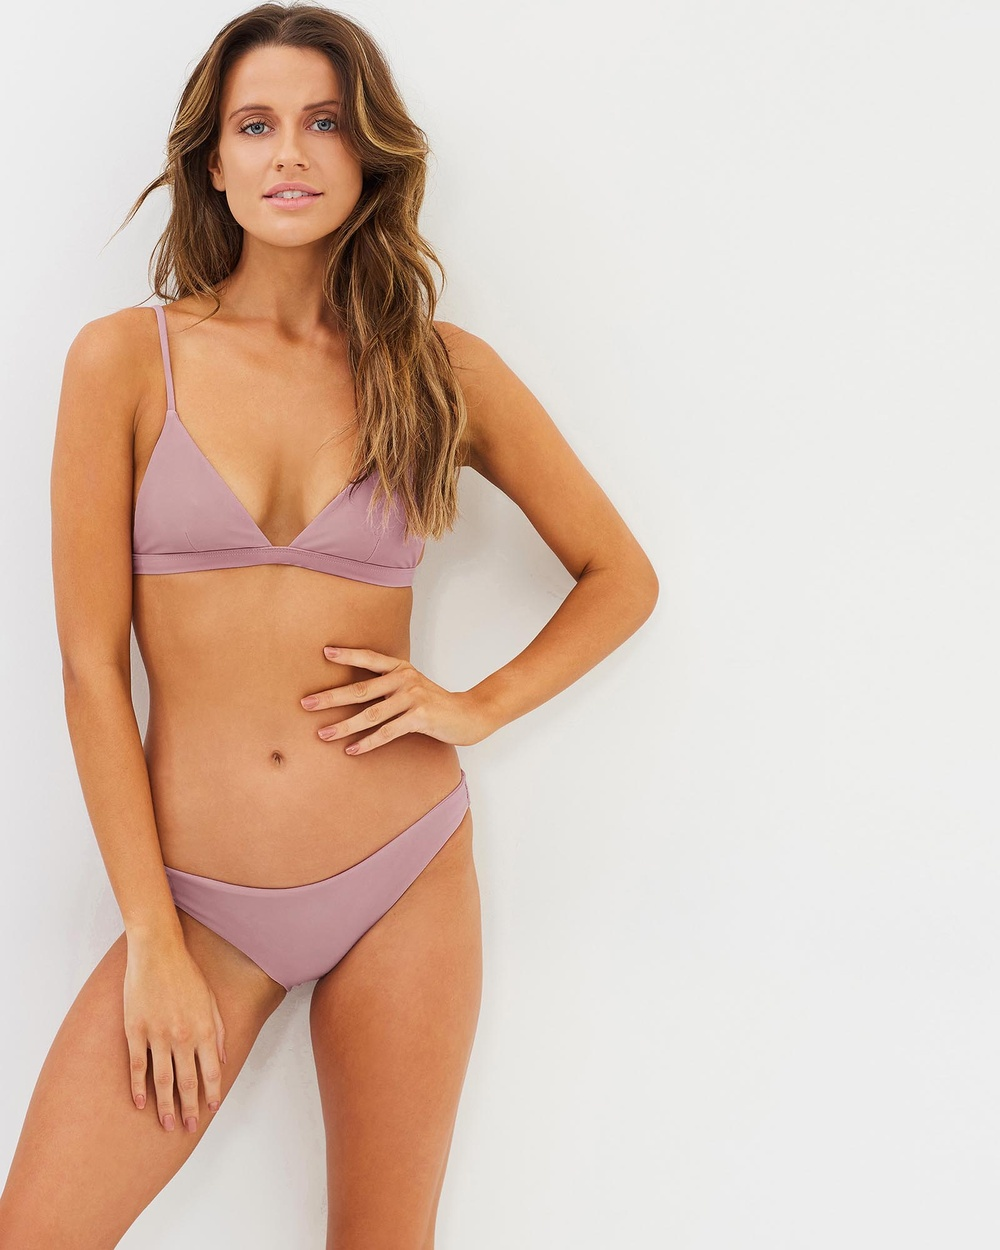 Tanliines The New Dawn Briefs Bikini Bottoms Lilac The New Dawn Briefs